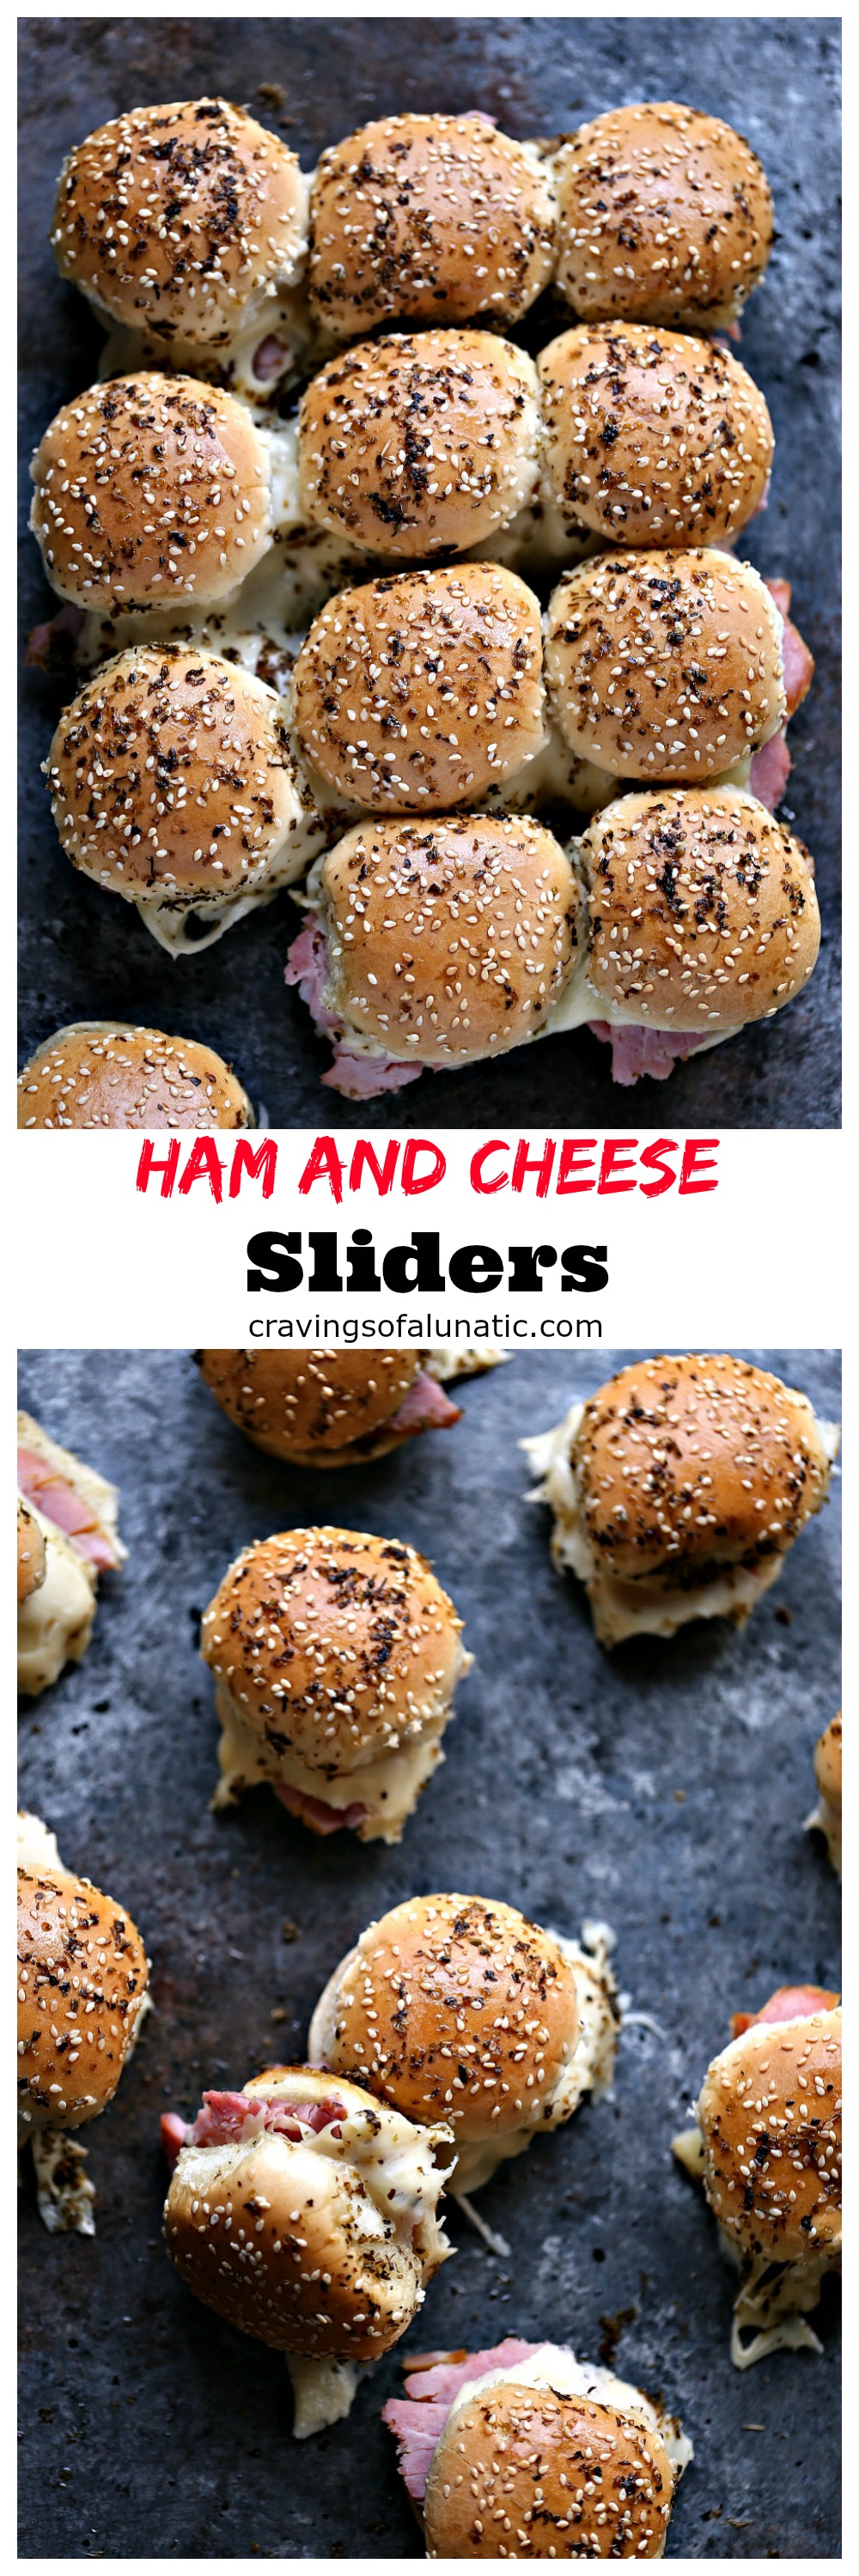 Ham and Cheese Sliders from cravingsofalunatic.com- These Ham and Cheese Sliders put a fun twist on an old classic. This easy recipe is on the table in under 30 minutes. Make an extra batch because these will fly off the platter at rapid speed.